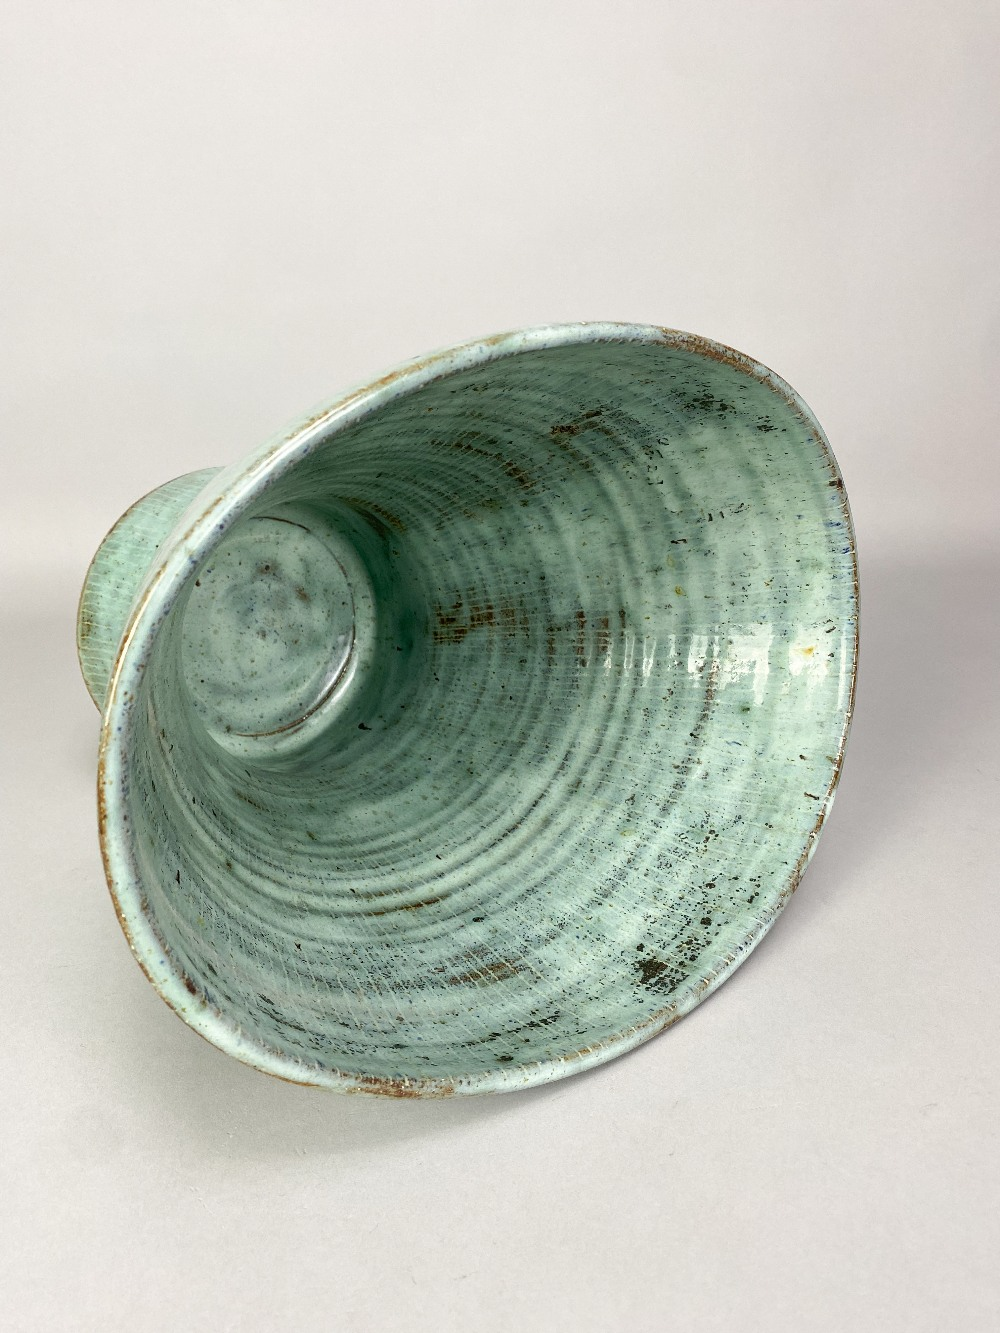 LUCIE RIE (1902-1995); a very large oval stoneware vase with squeezed rim and inlaid lines covered - Image 3 of 5